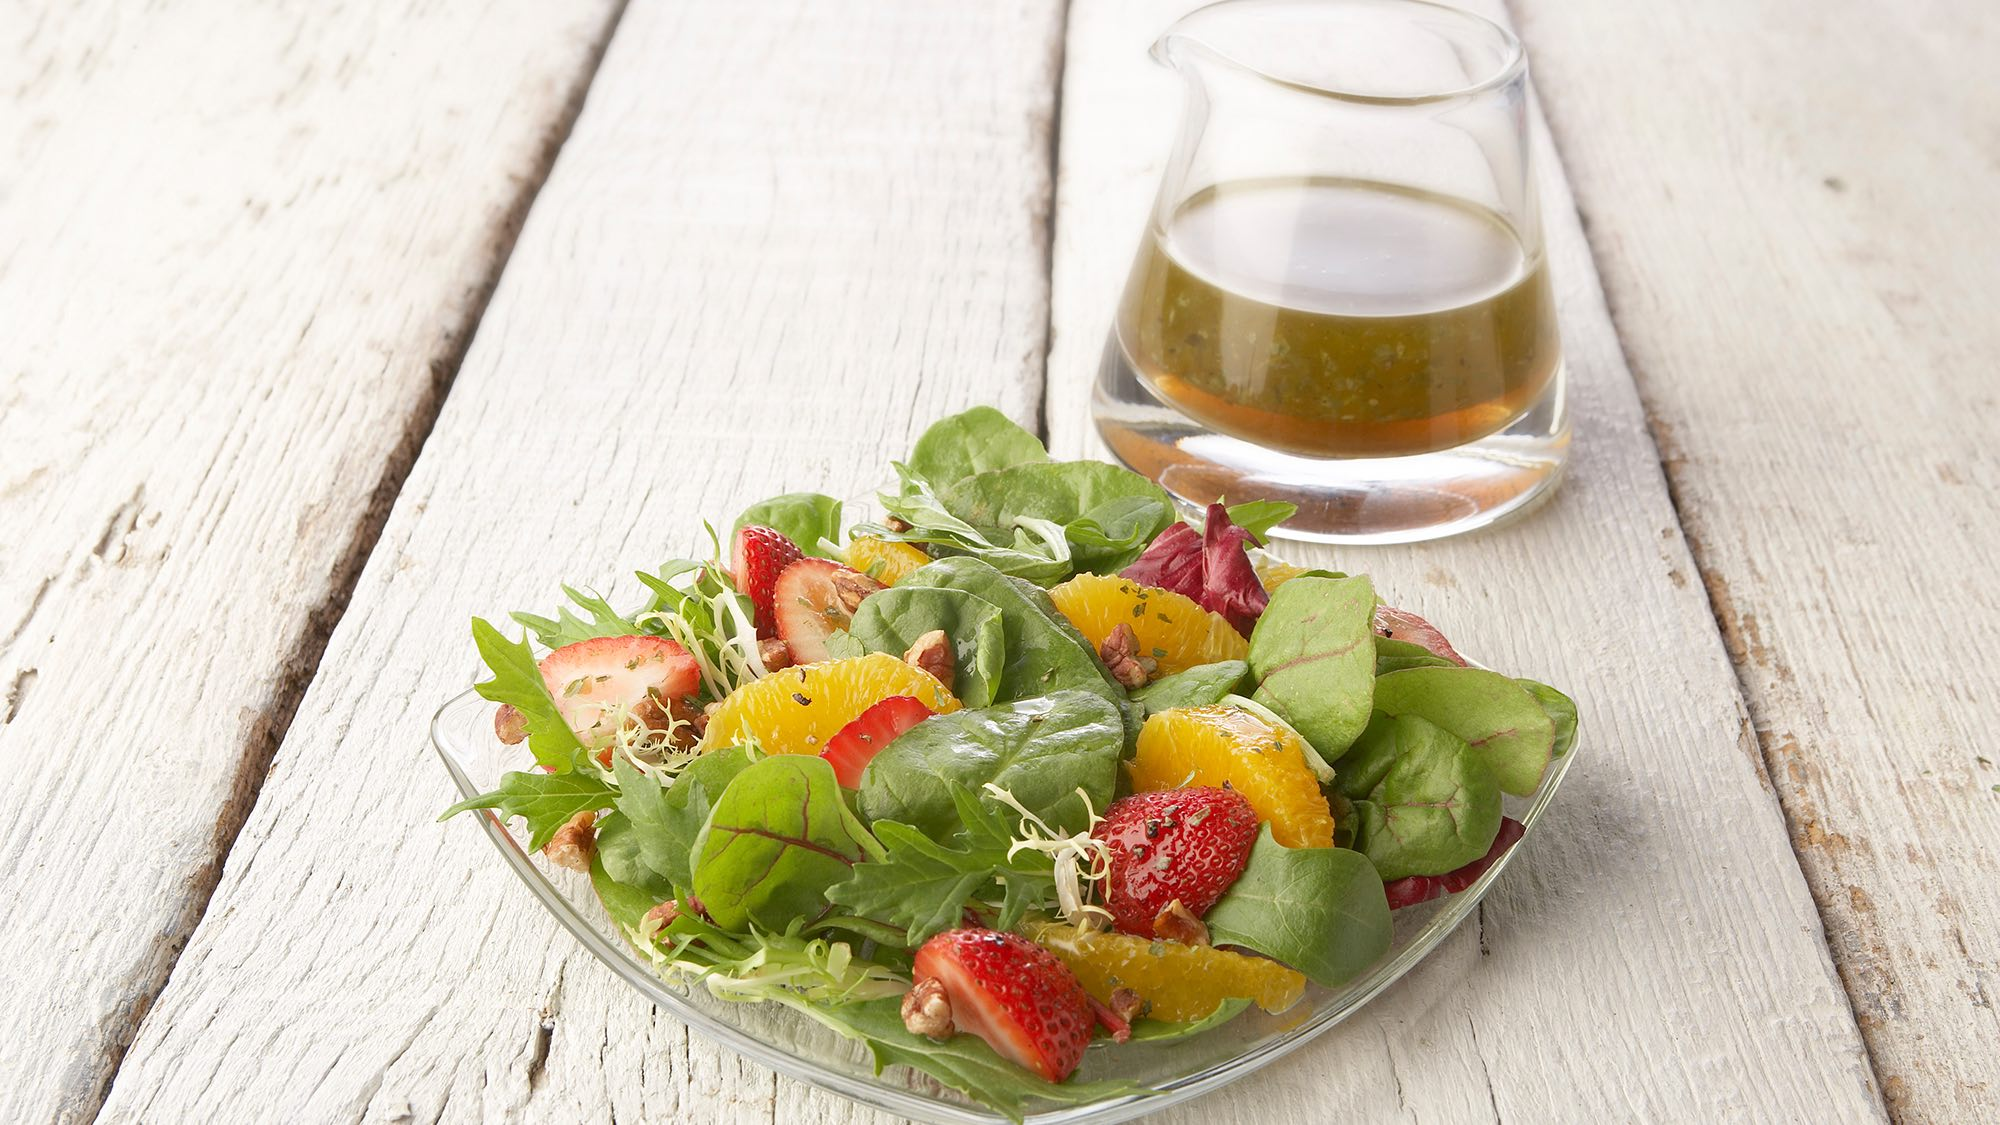 field-greens-with-oranges-strawberries-and-vanilla-vinaigrette.jpg